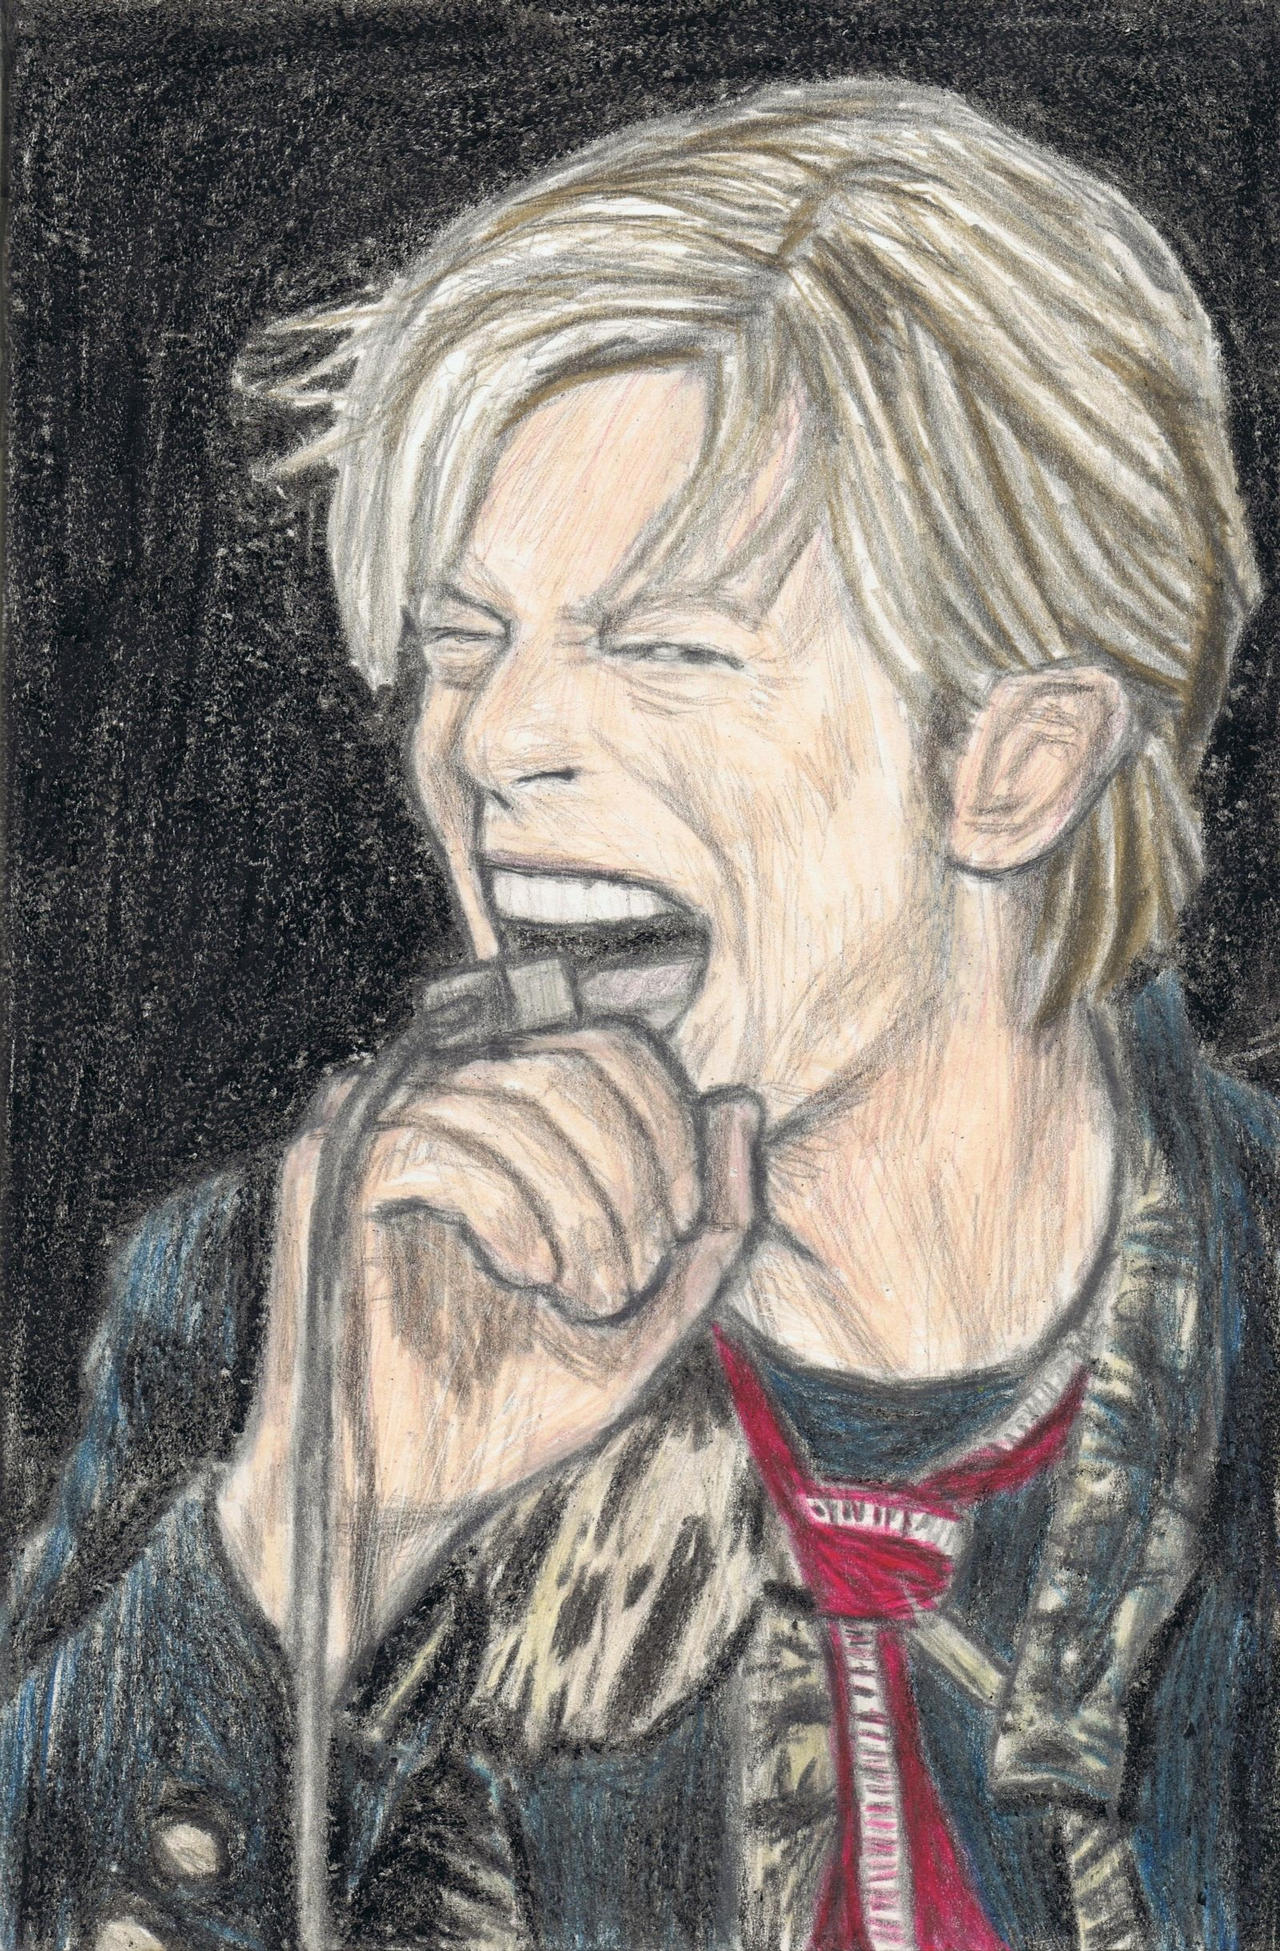 David Bowie doing concert with a microphone ring by gagambo